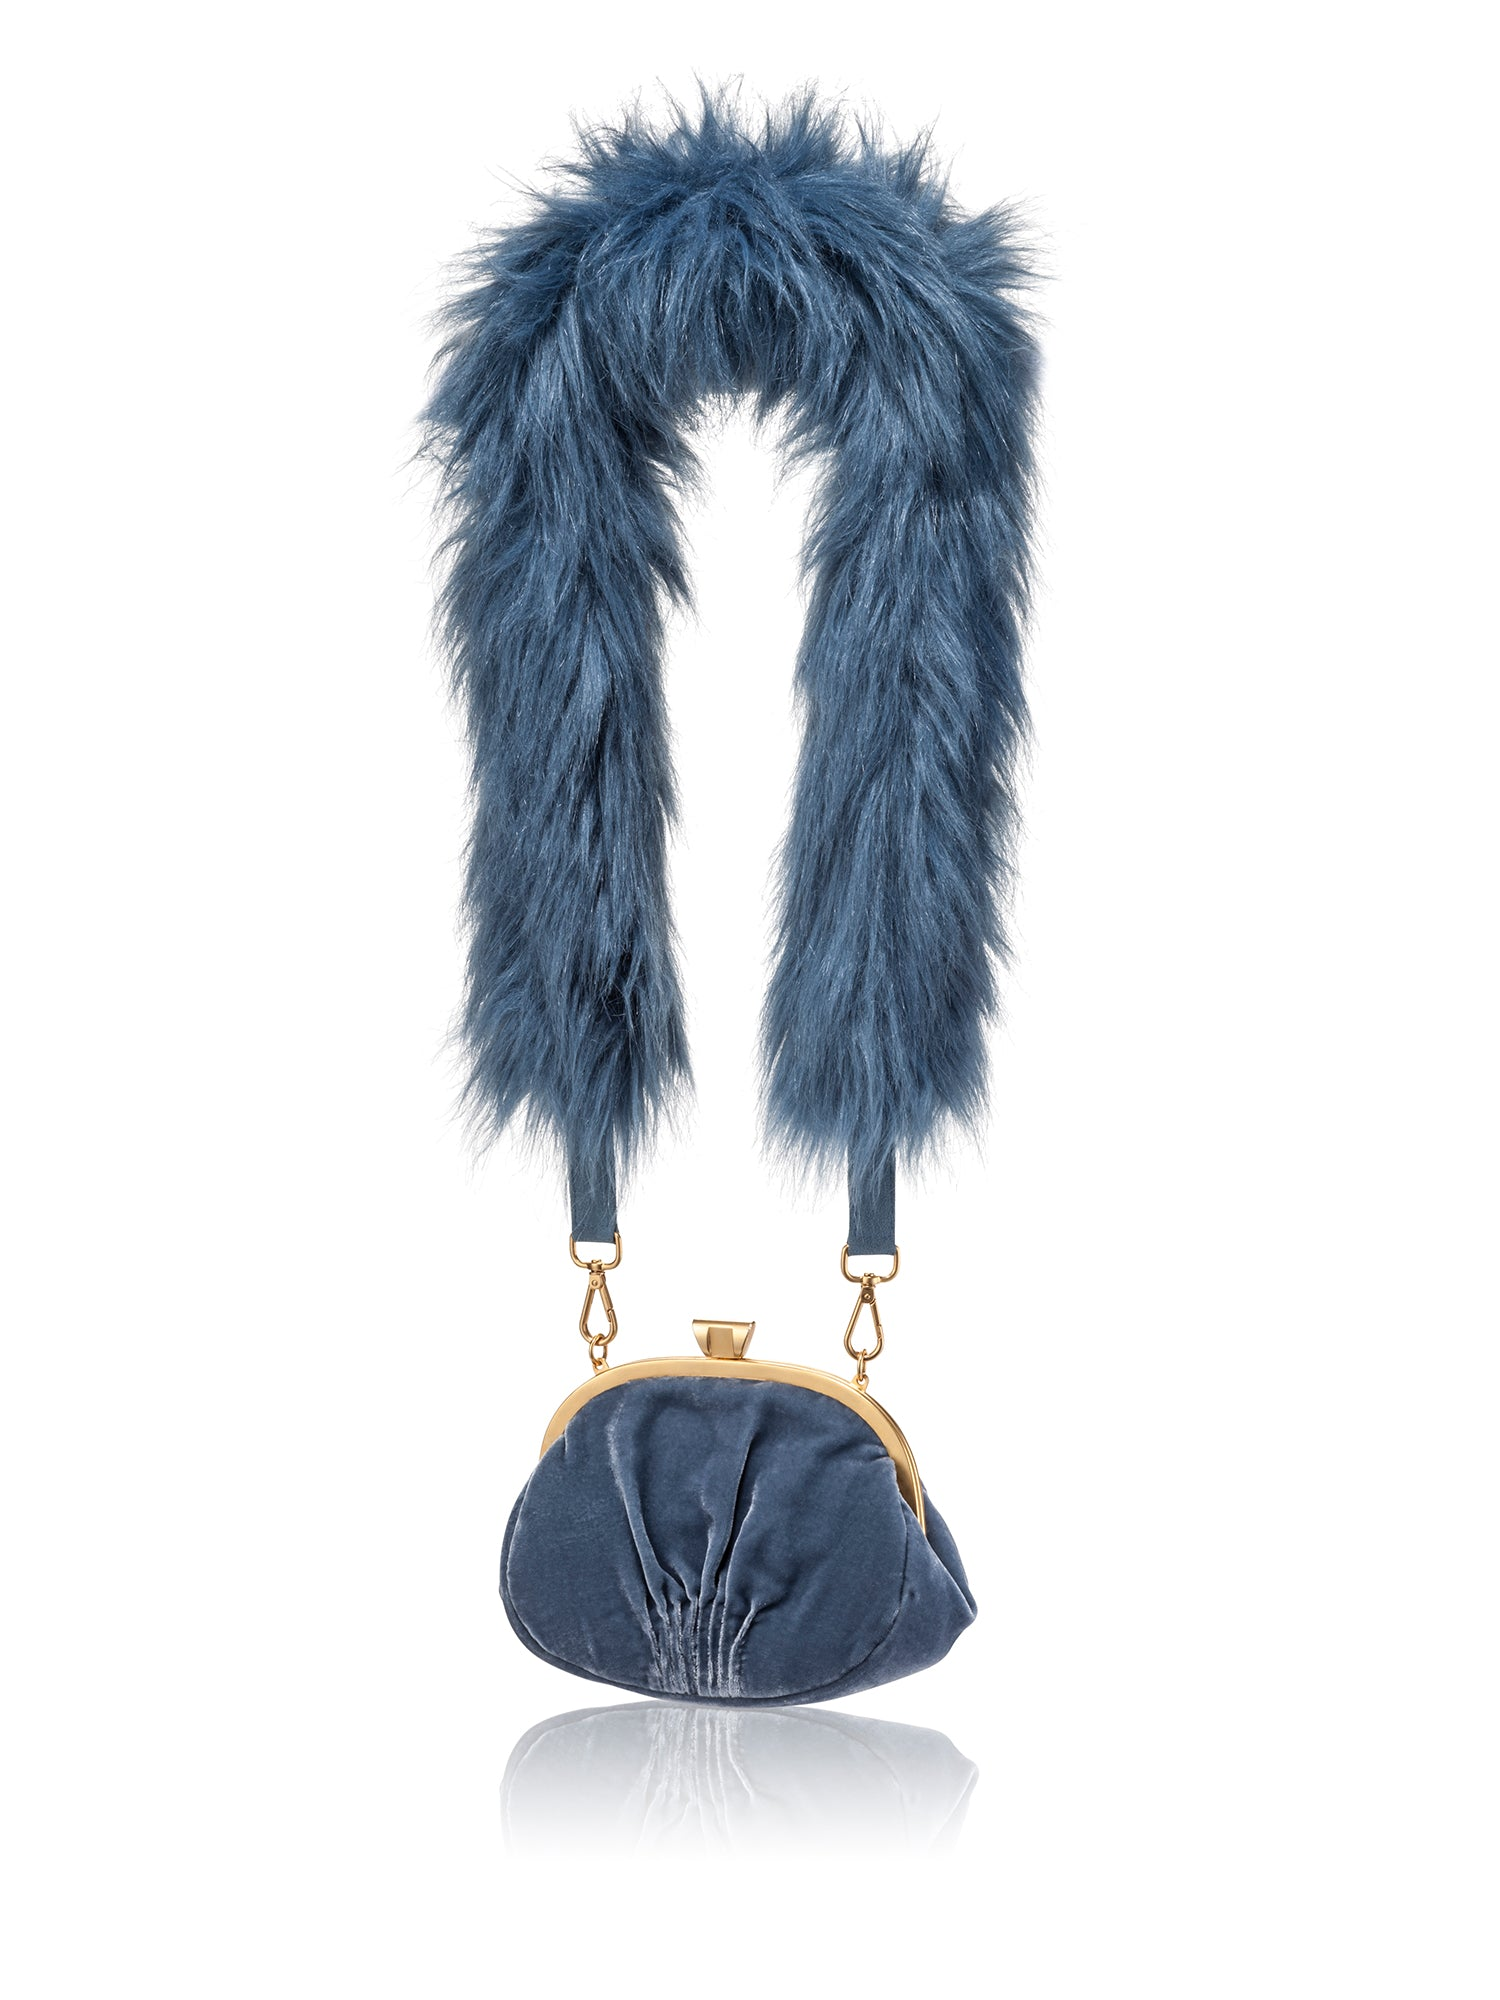 A Packshot Of Marei1998's Forget Me Not Velvet Purse In Light Blue Color. Made From Lustrous Velvet And Topped With Gold Plated Brass Clasp For Smooth Closure. The Puffy Silhouette In Light Blue Color Is Accentuated By A Lush Faux Fur Strap, Creating A Contemporary Vintage Look. Front View.